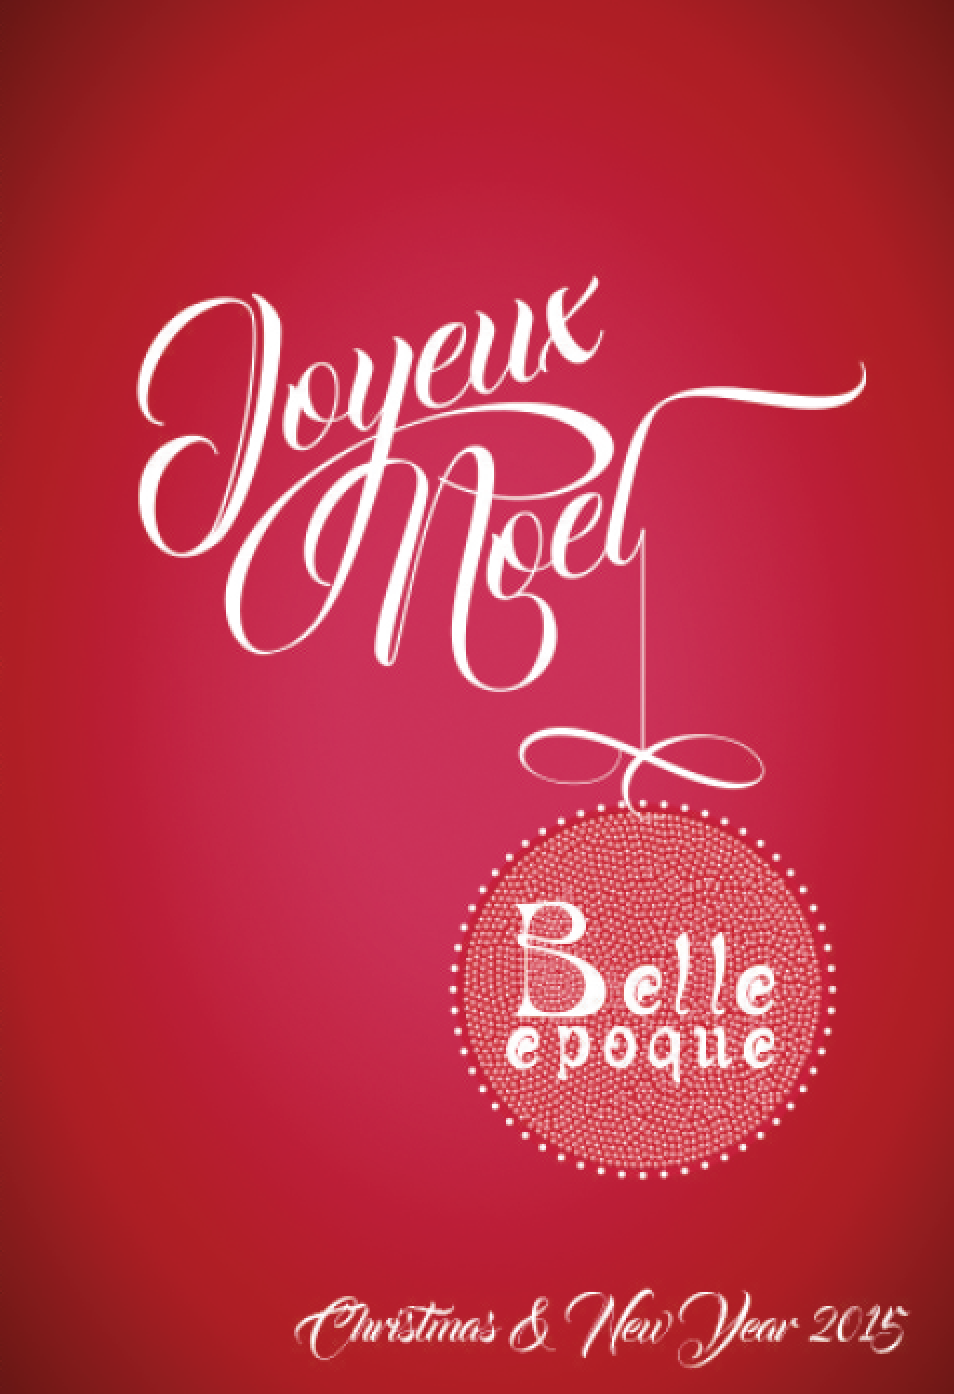 Christmas 2015 at the Belle Epoque, Knutsford, Cheshire